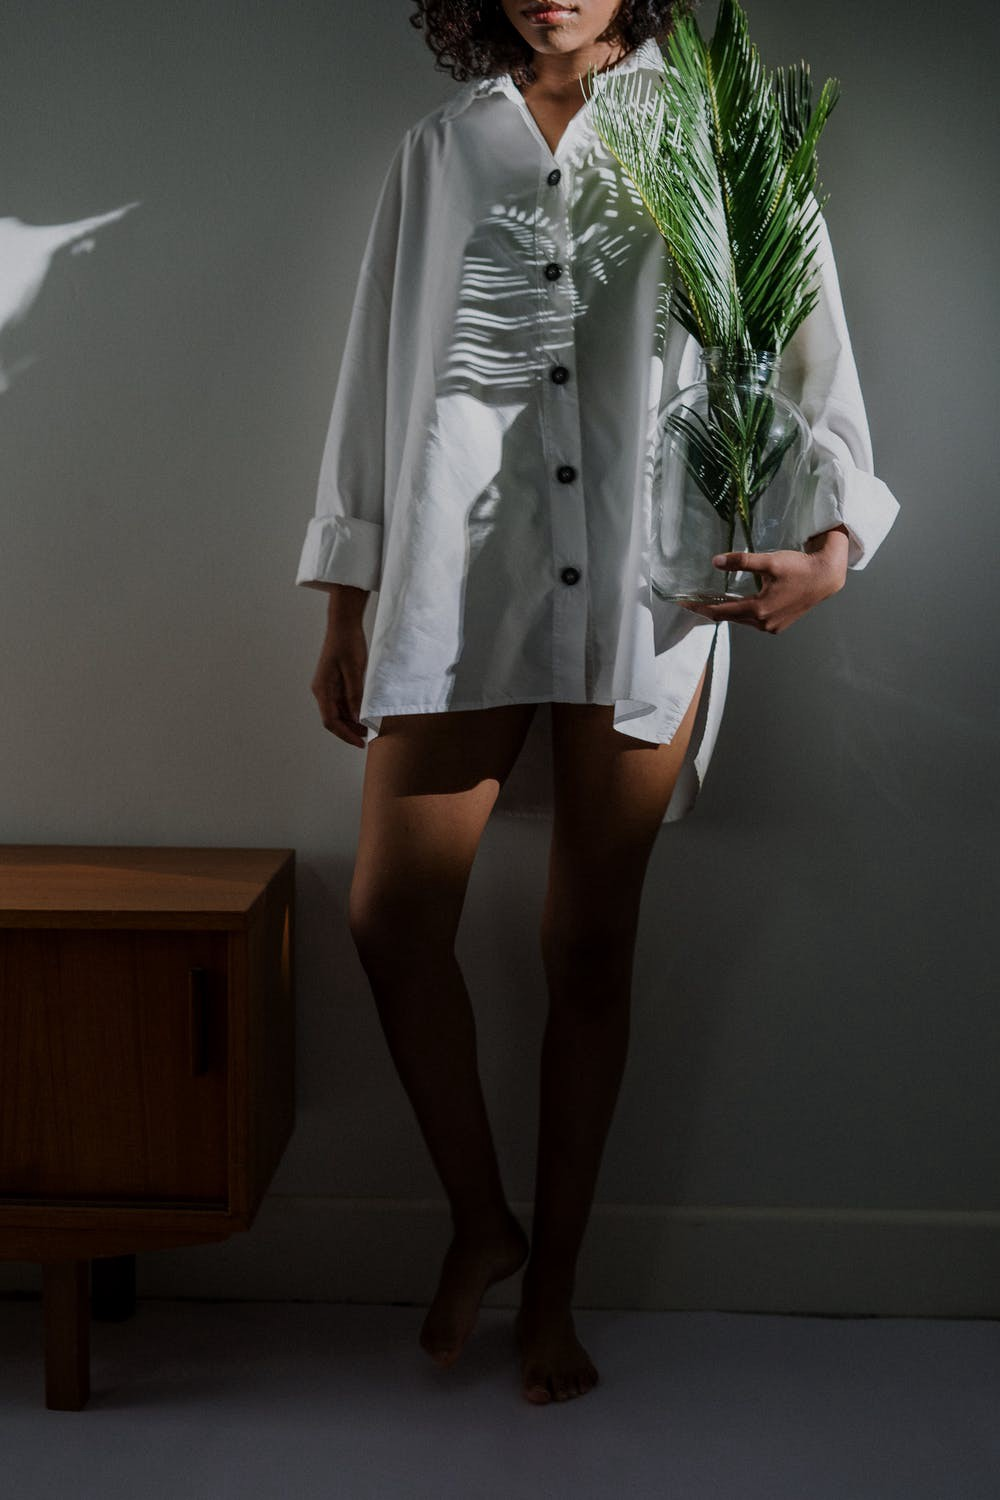 A woman wearing a white button-up coat and carrying a plant vase on her left hand